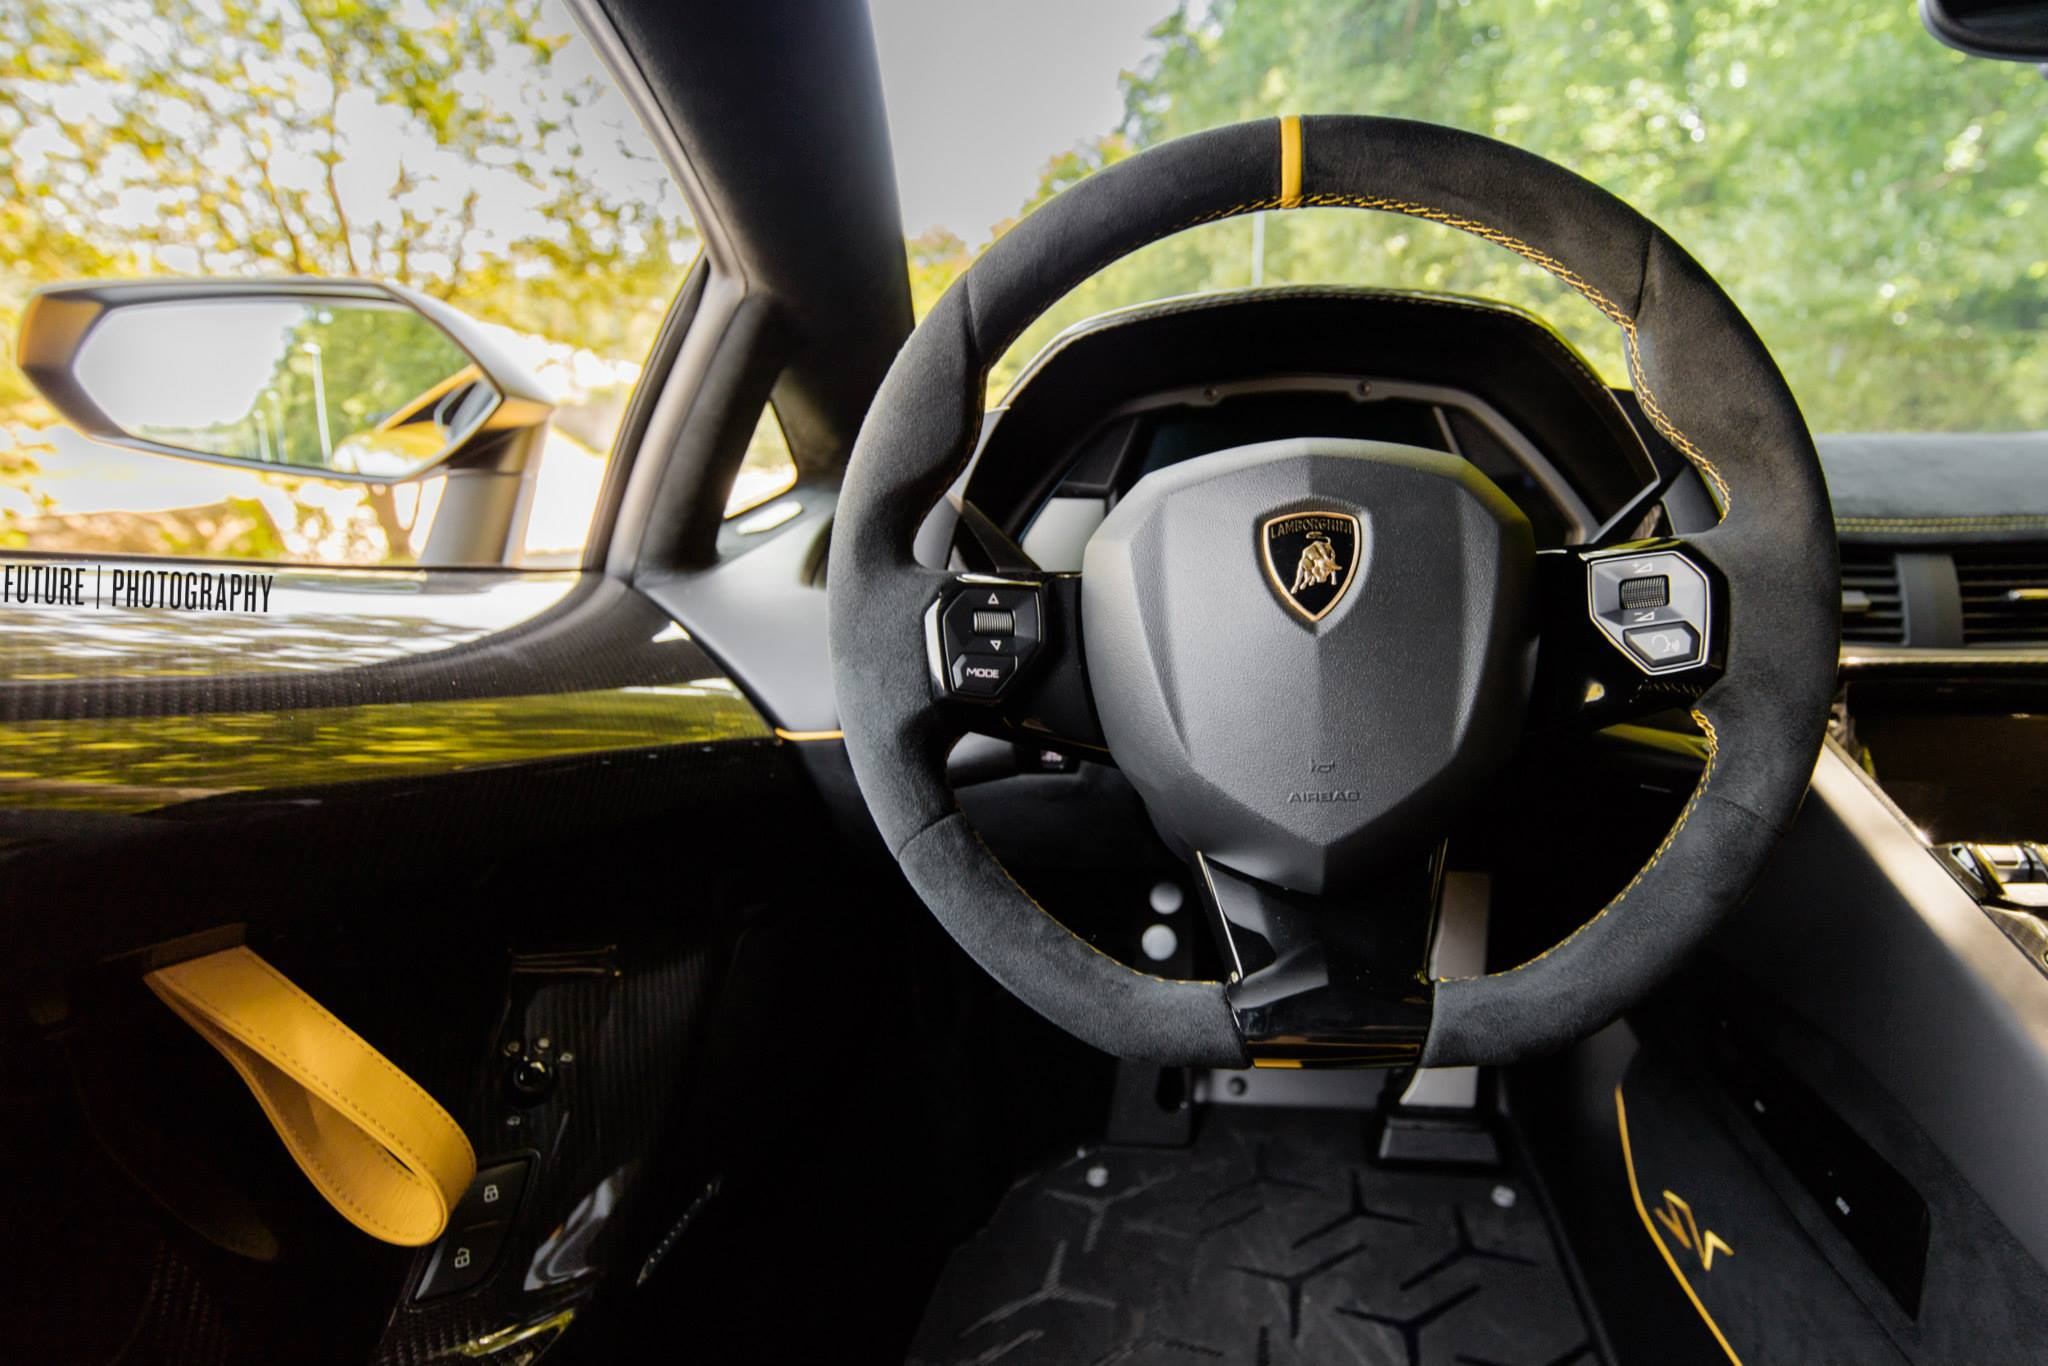 2016 Lamborghini Aventador Lp 750 4 Superveloce Interior Photo